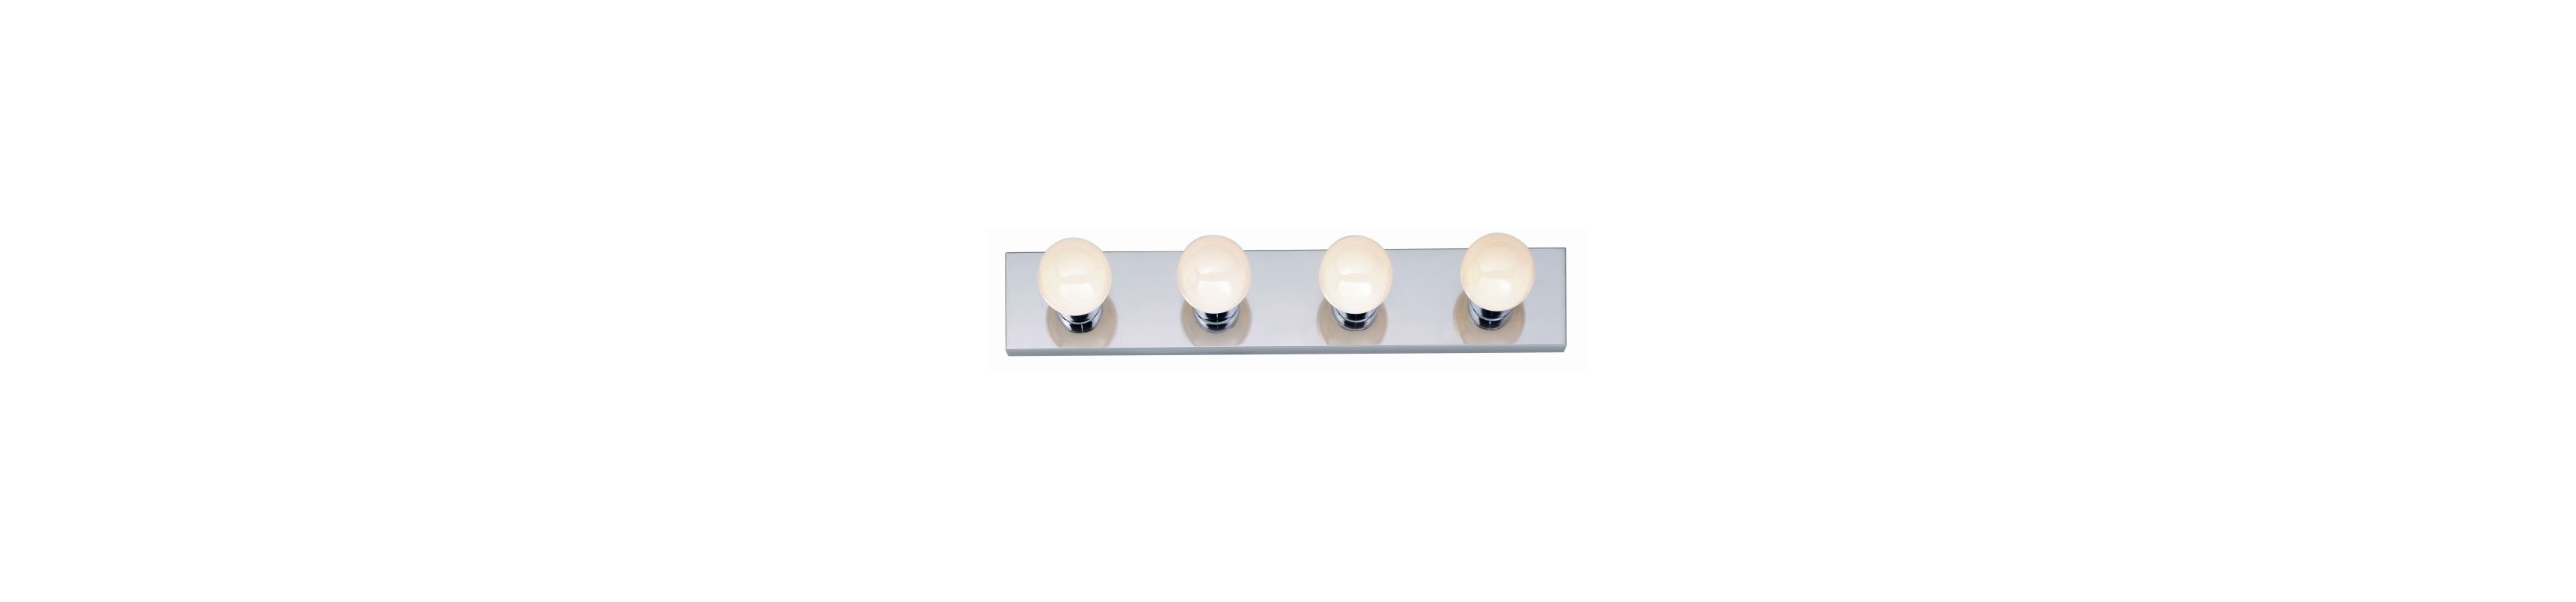 "Nuvo Lighting 77/193 Four Light 24"" Bathroom Bar Light Polished Chrome"